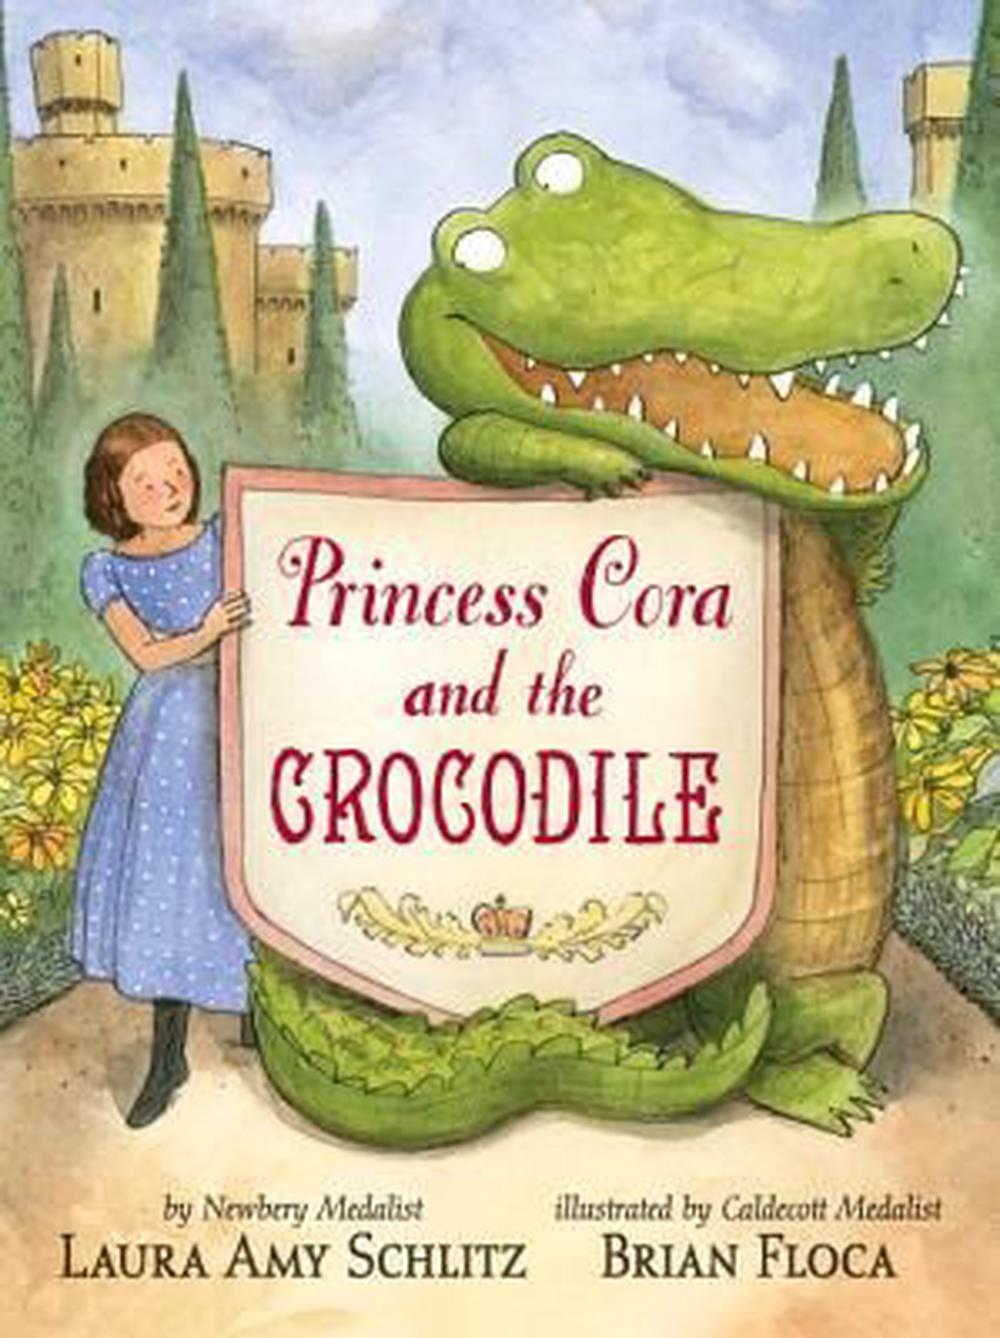 Princess Cora and the Crocodile by Laura Amy Schlitz,Brian Floca, ISBN: 9780763648220